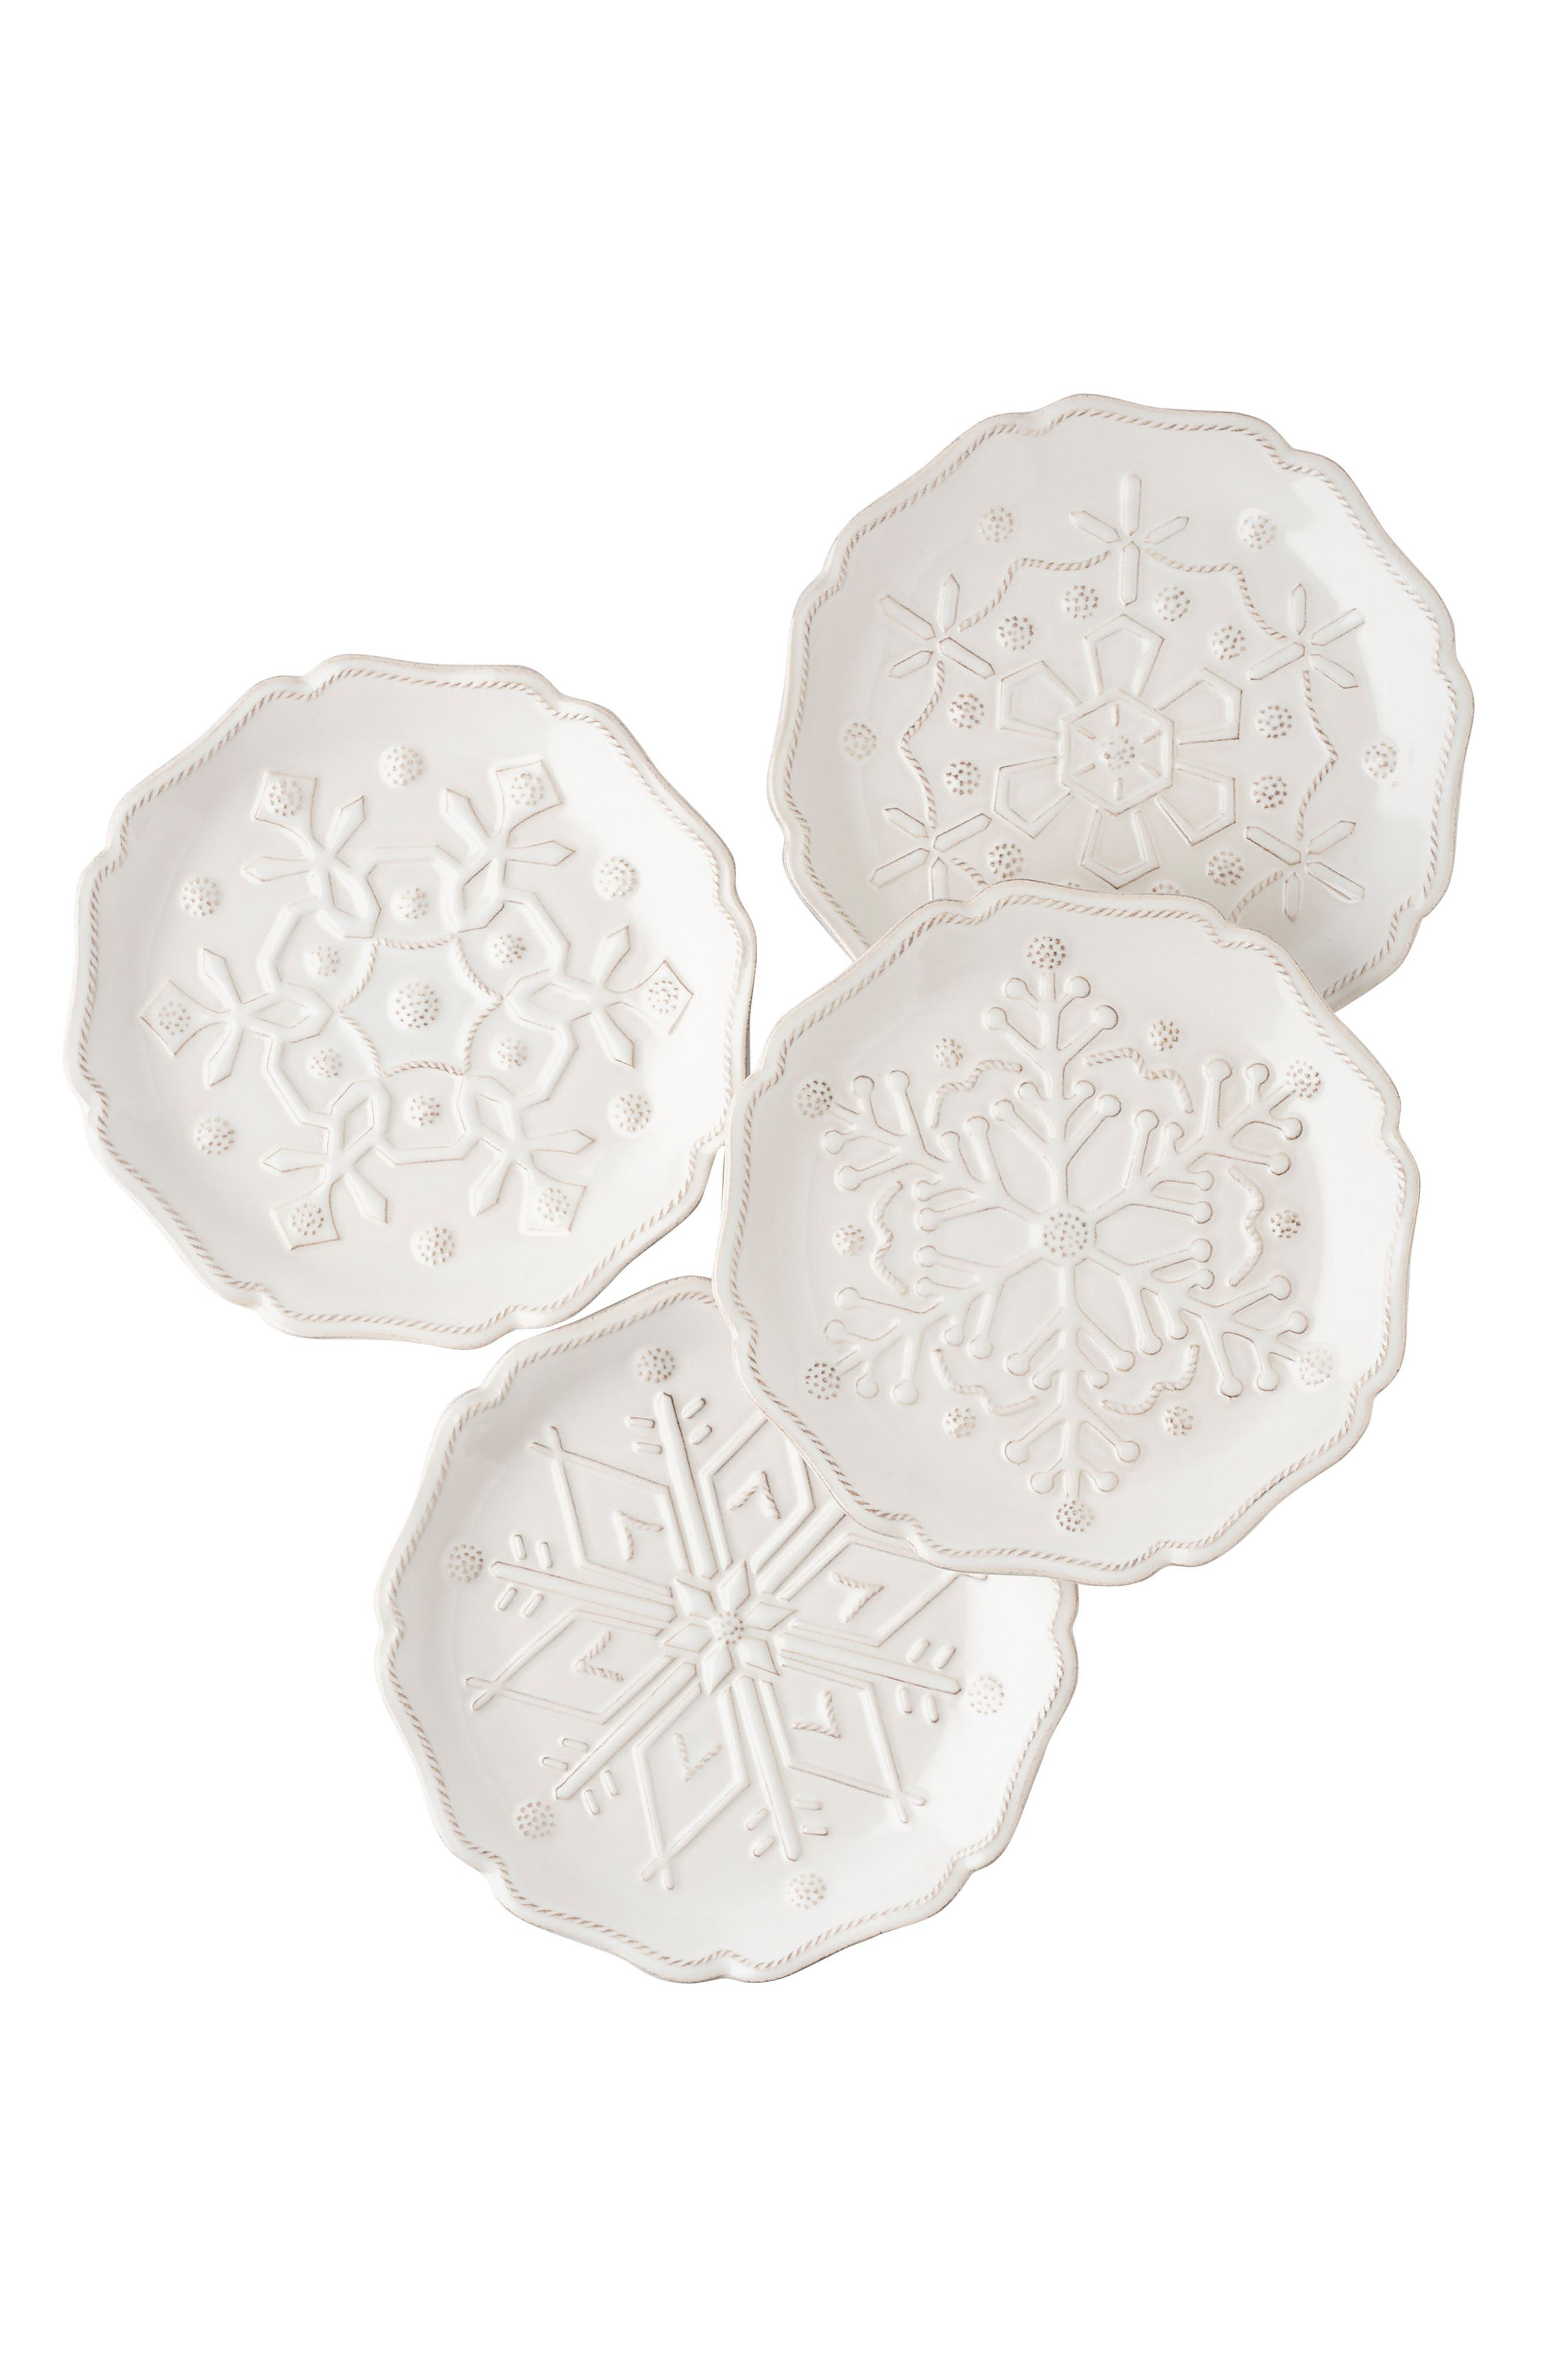 Snowfall Whitewash Set of 4 Ceramic Tidbit Plates,                             Main thumbnail 1, color,                             100